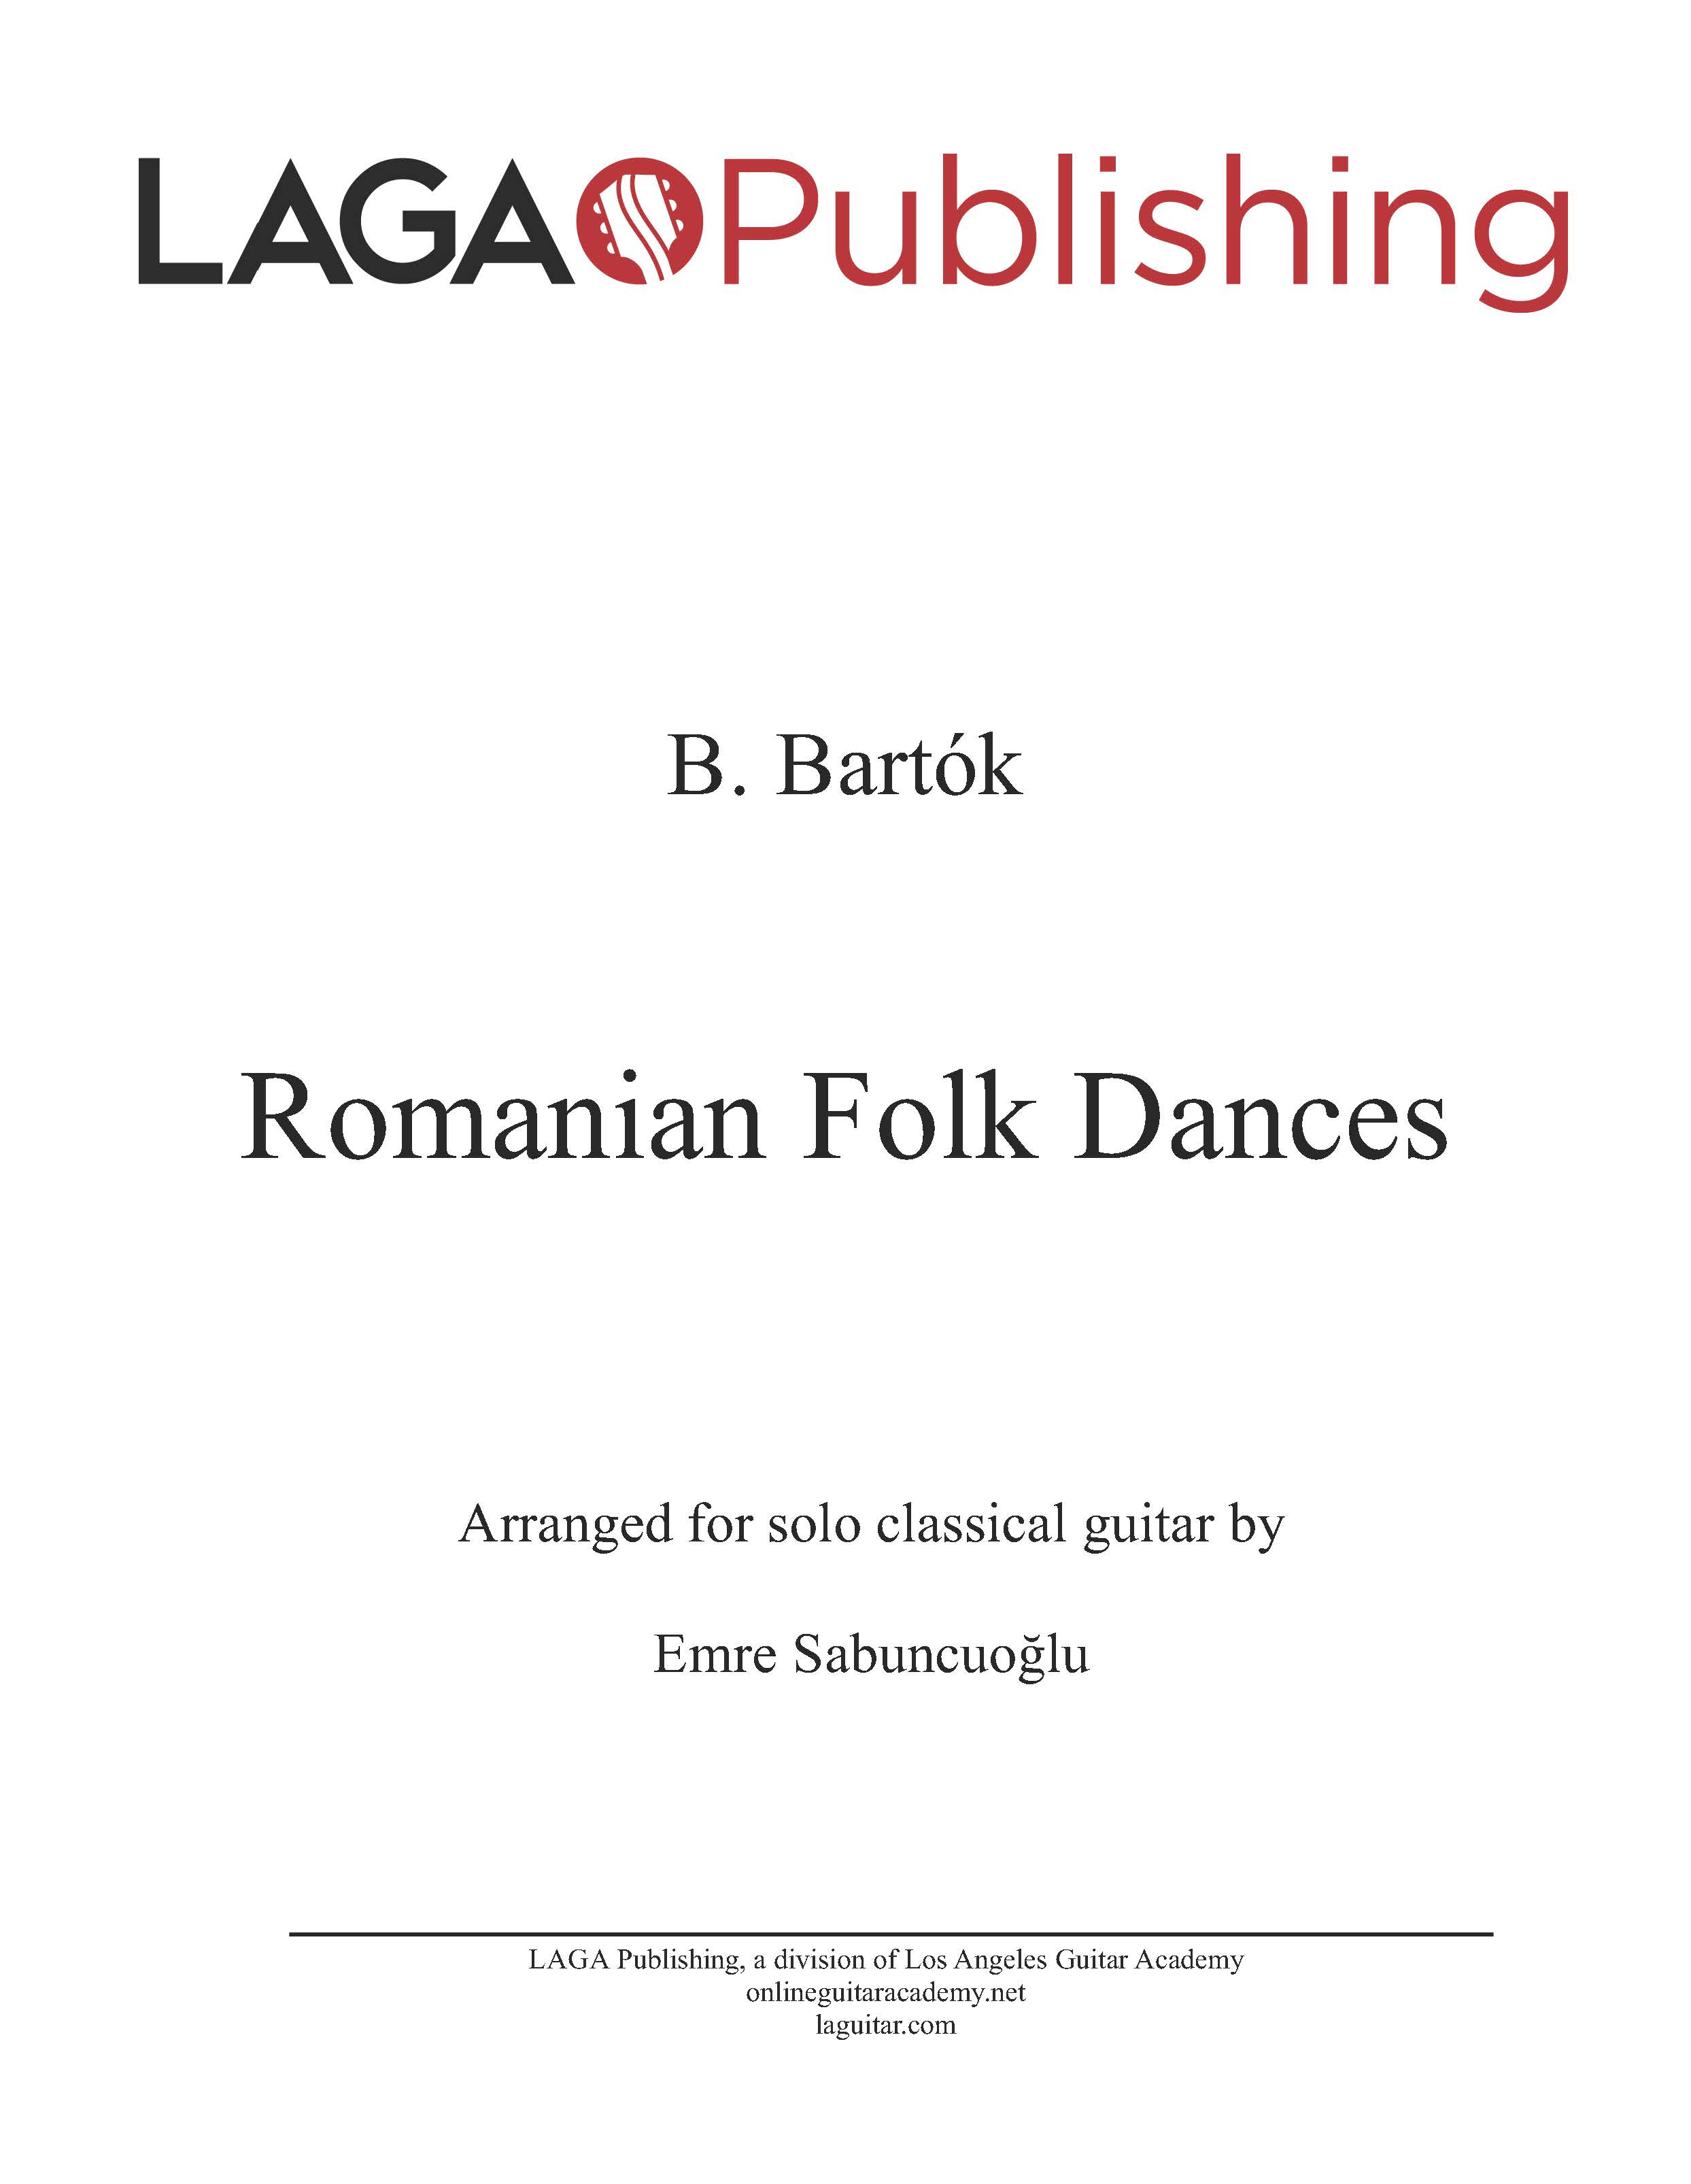 Romanian Folk Dances by Béla Bartók for classical guitar